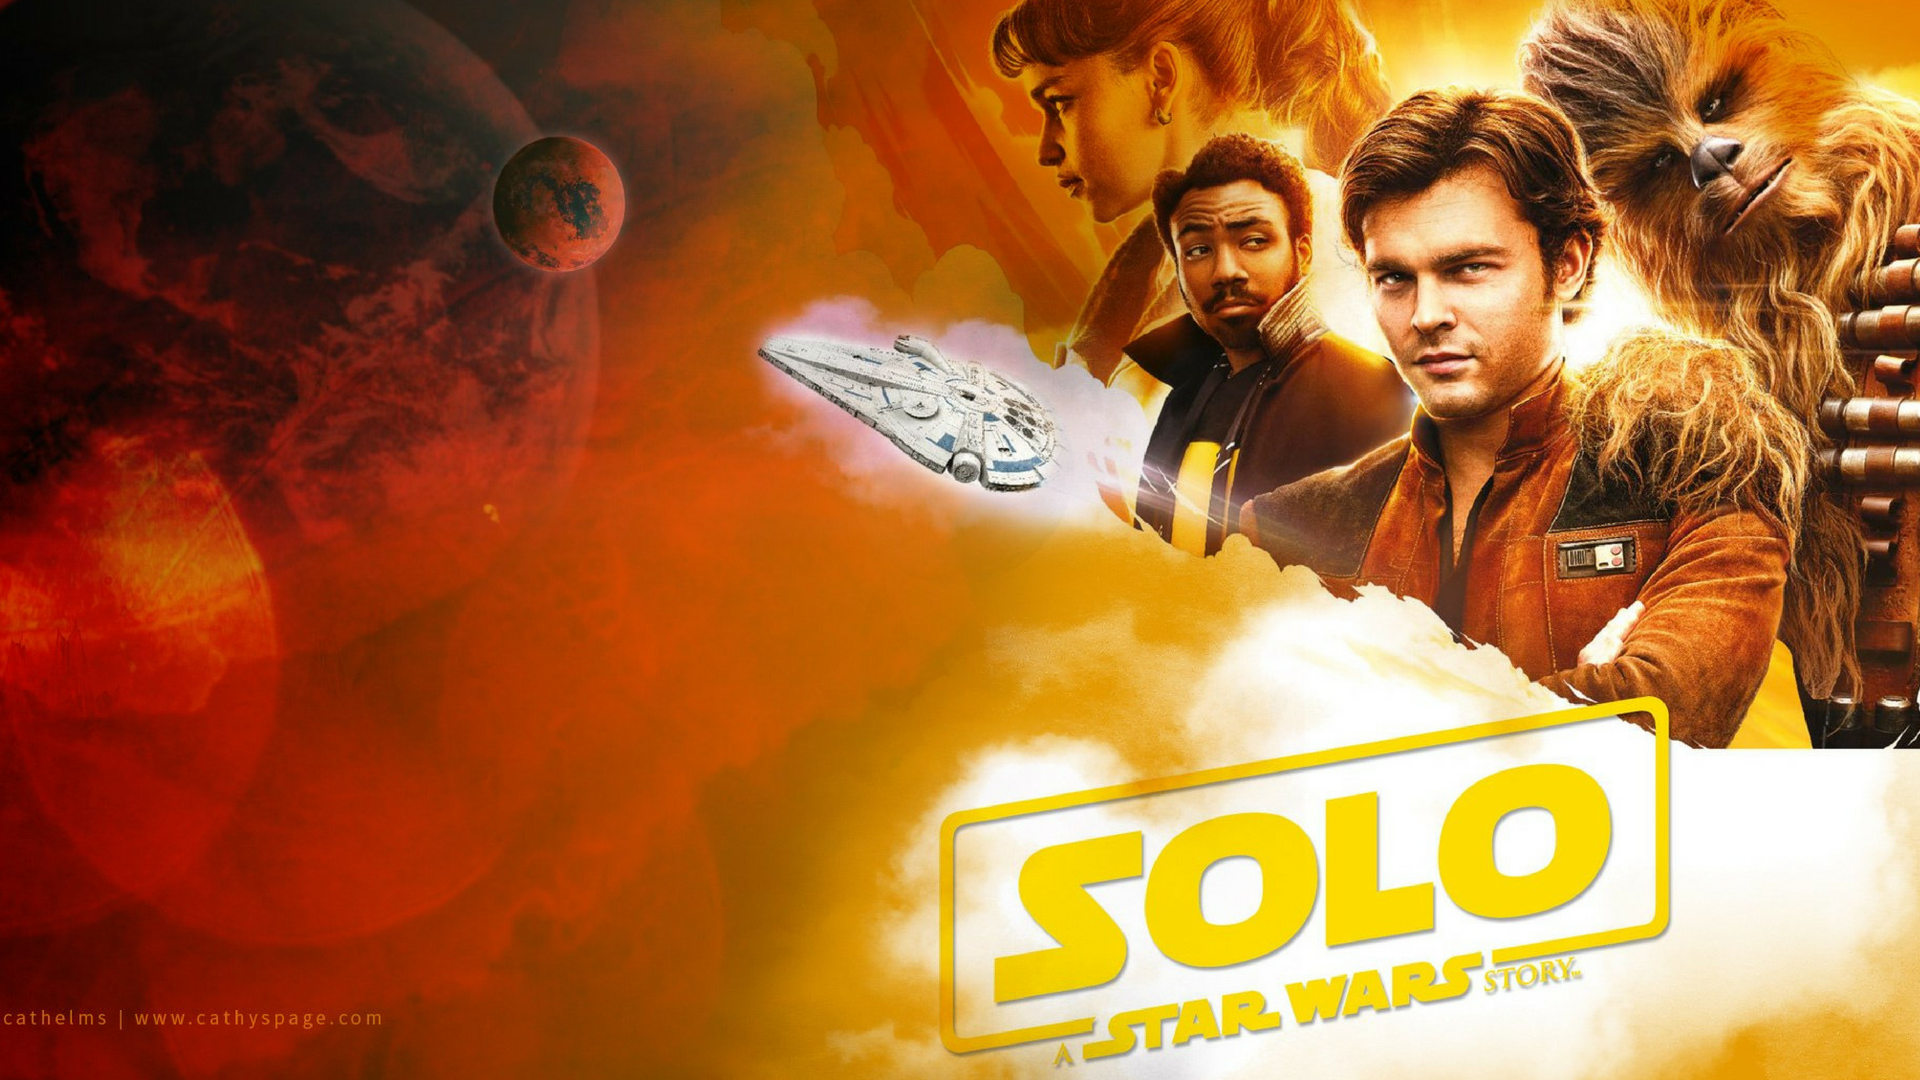 Solo a star wars movie